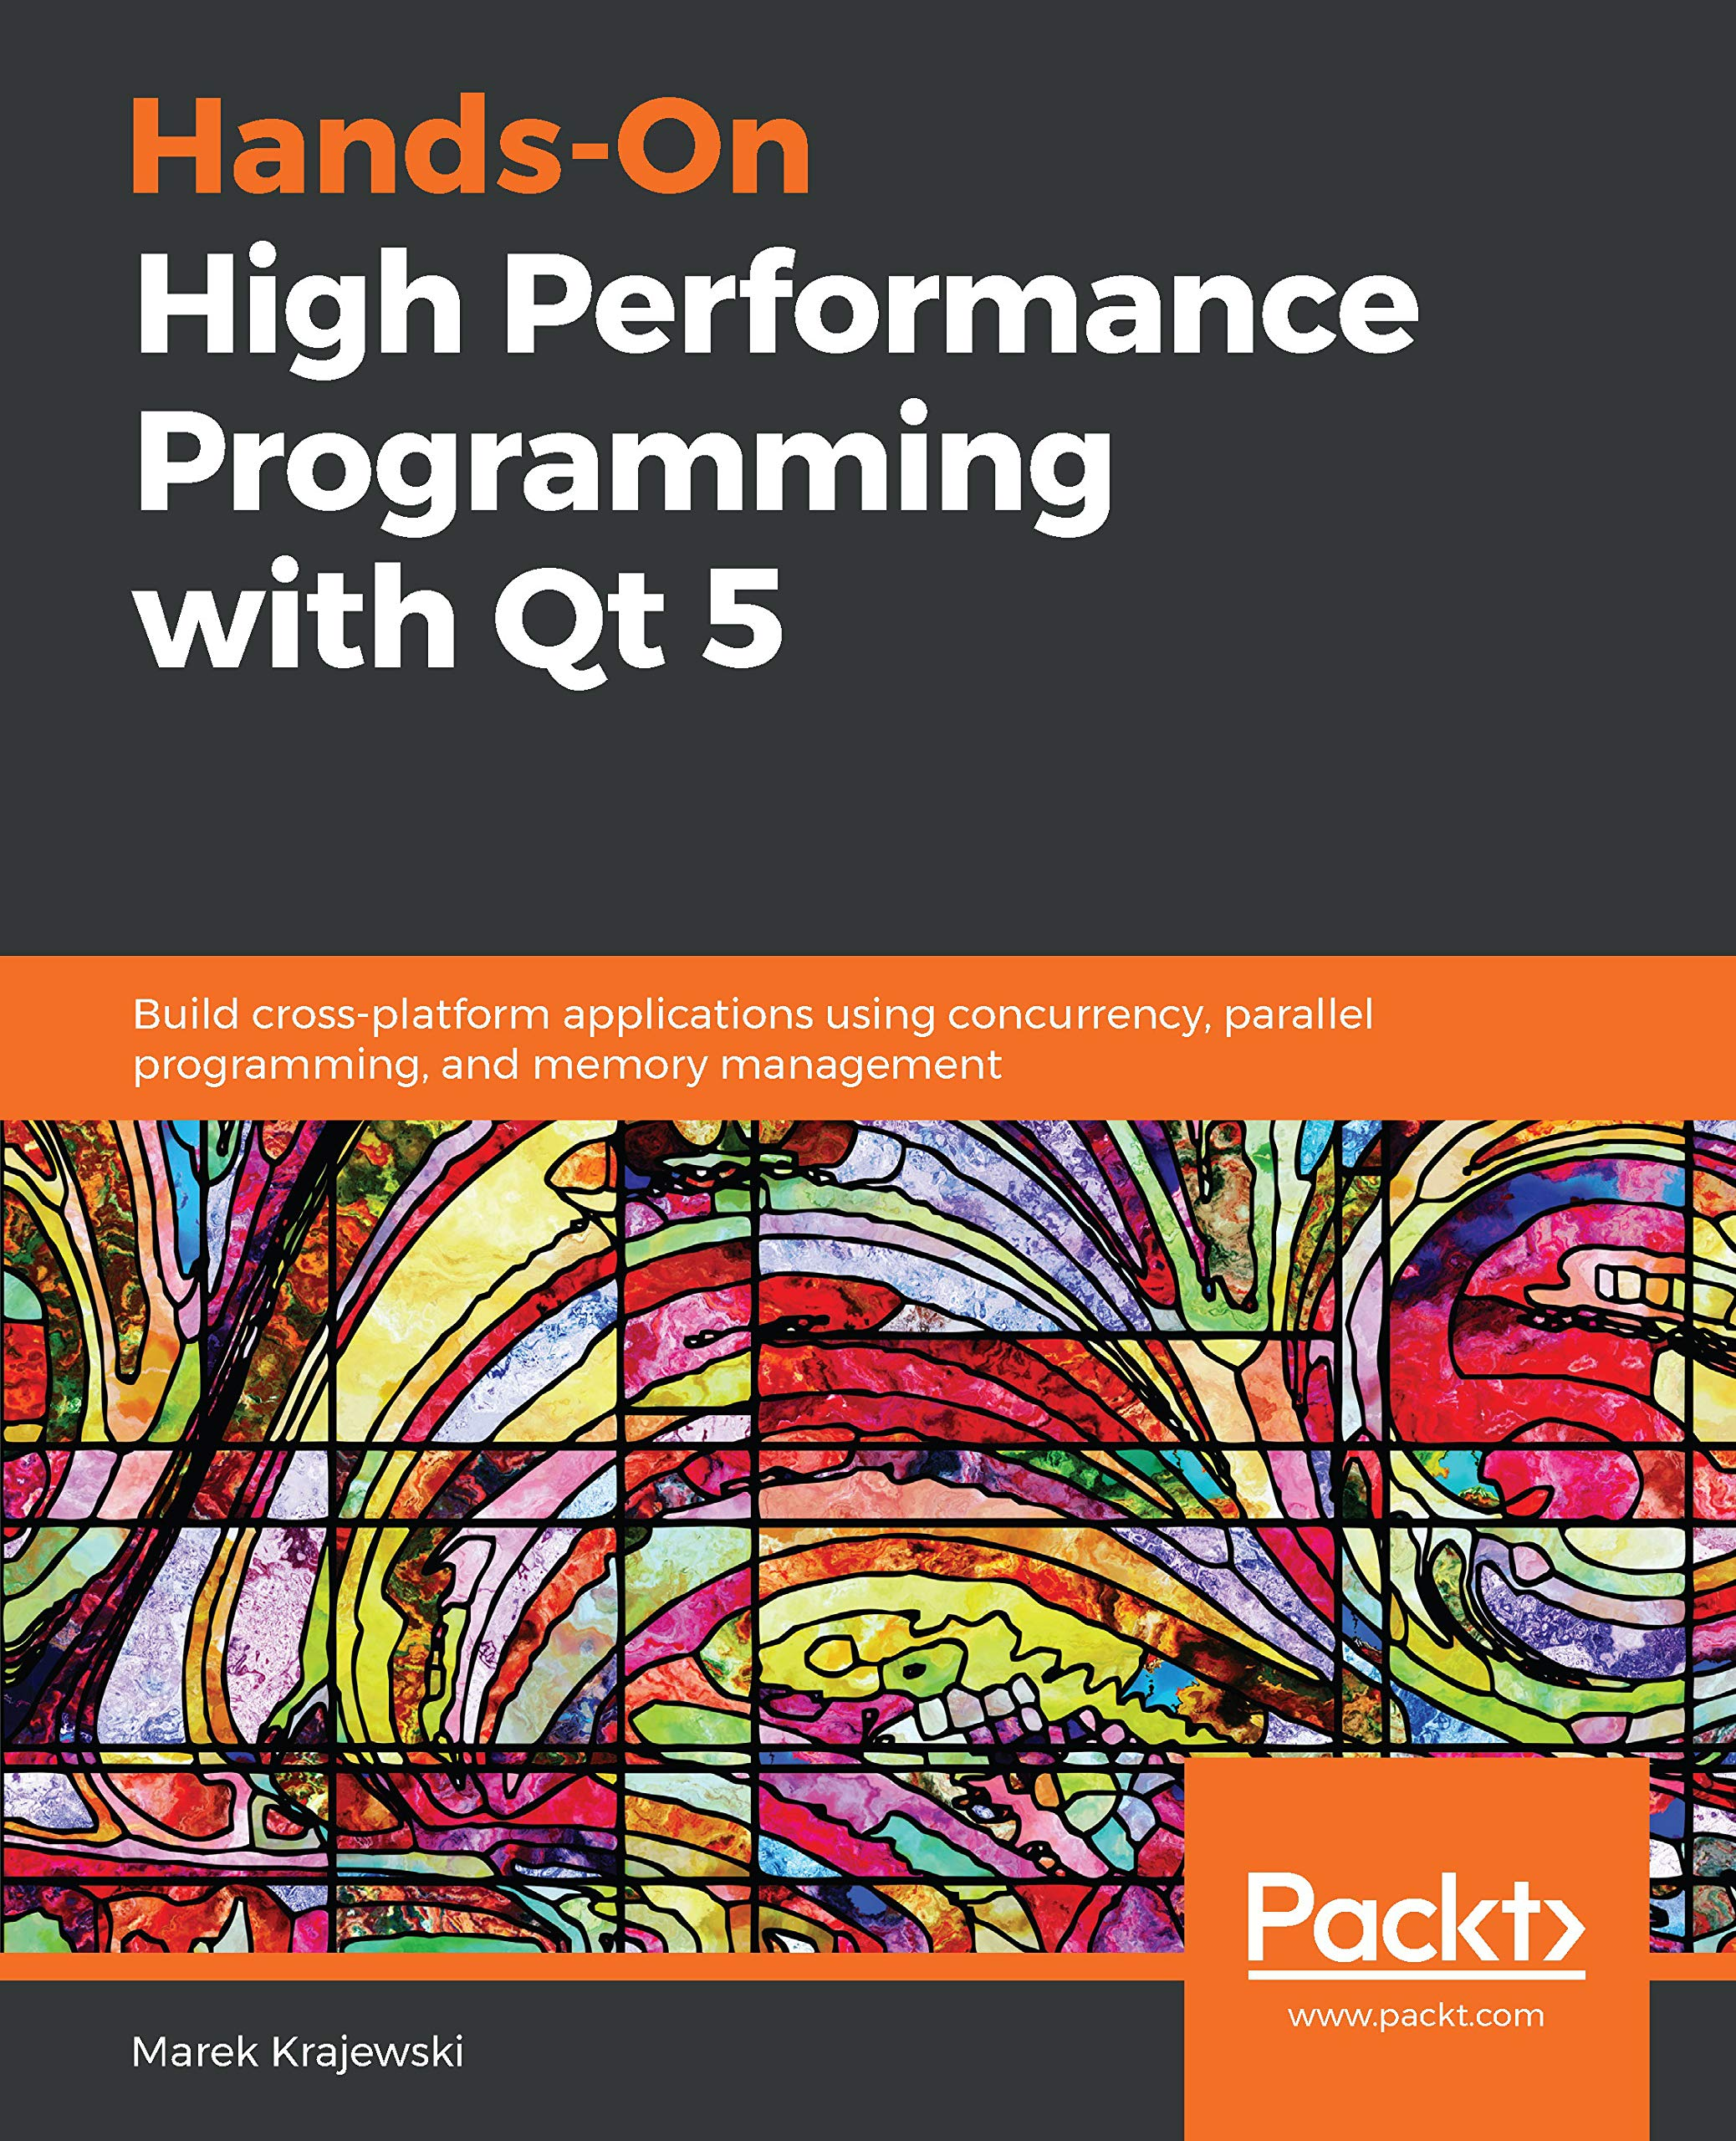 Hands-On High Performance Programming with Qt 5: Build cross-platform applications using concurrency, parallel programming, and memory management por Marek Krajewski